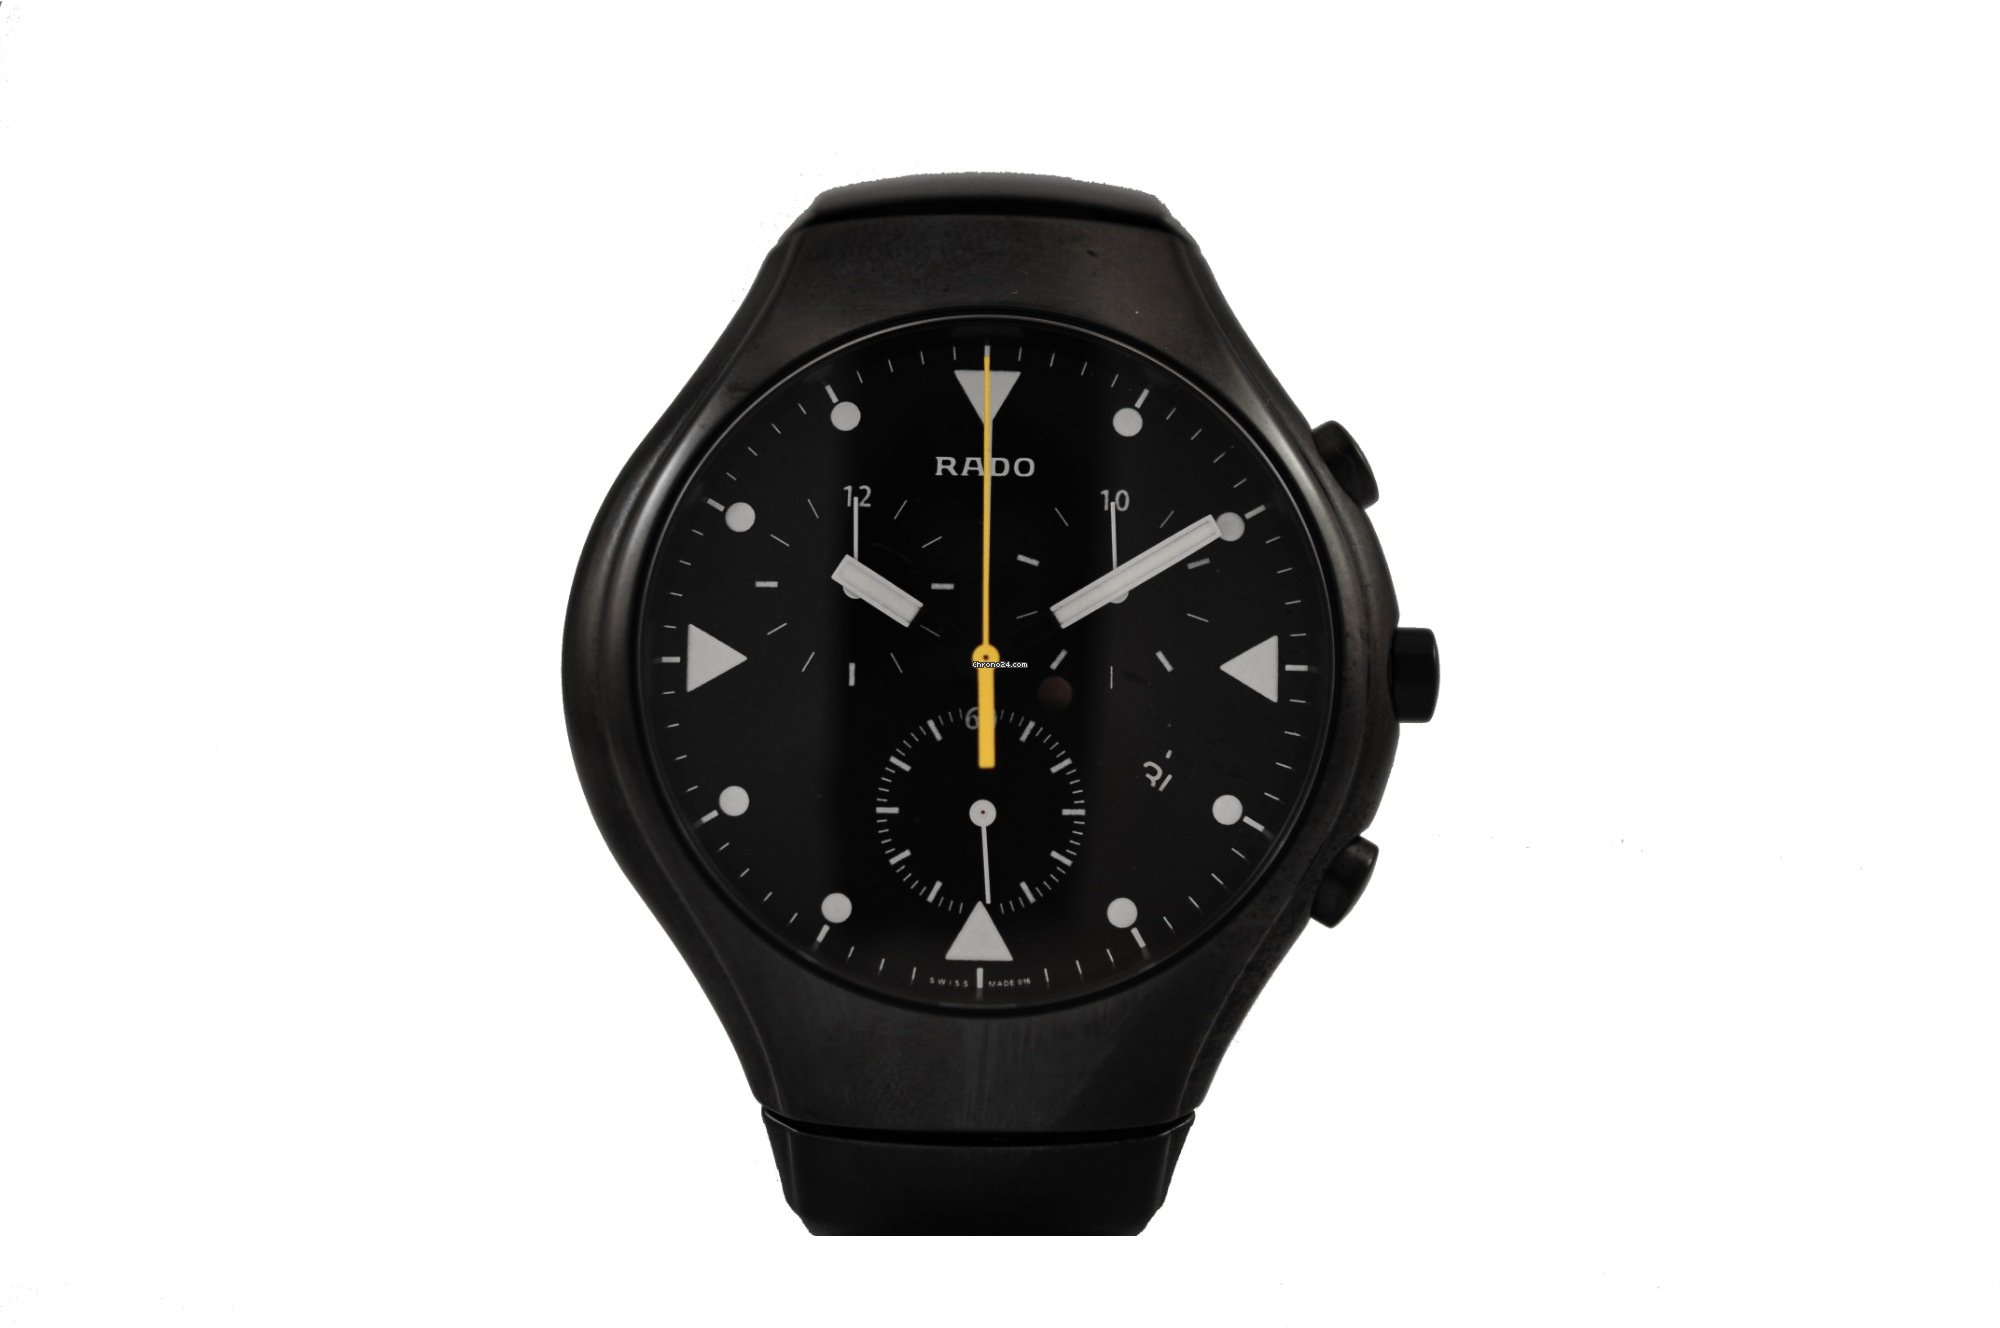 640a10ae2 Rado True Black Dial Chronograph High Tech Ceramic Men's Watch for $995 for  sale from a Private Seller on Chrono24